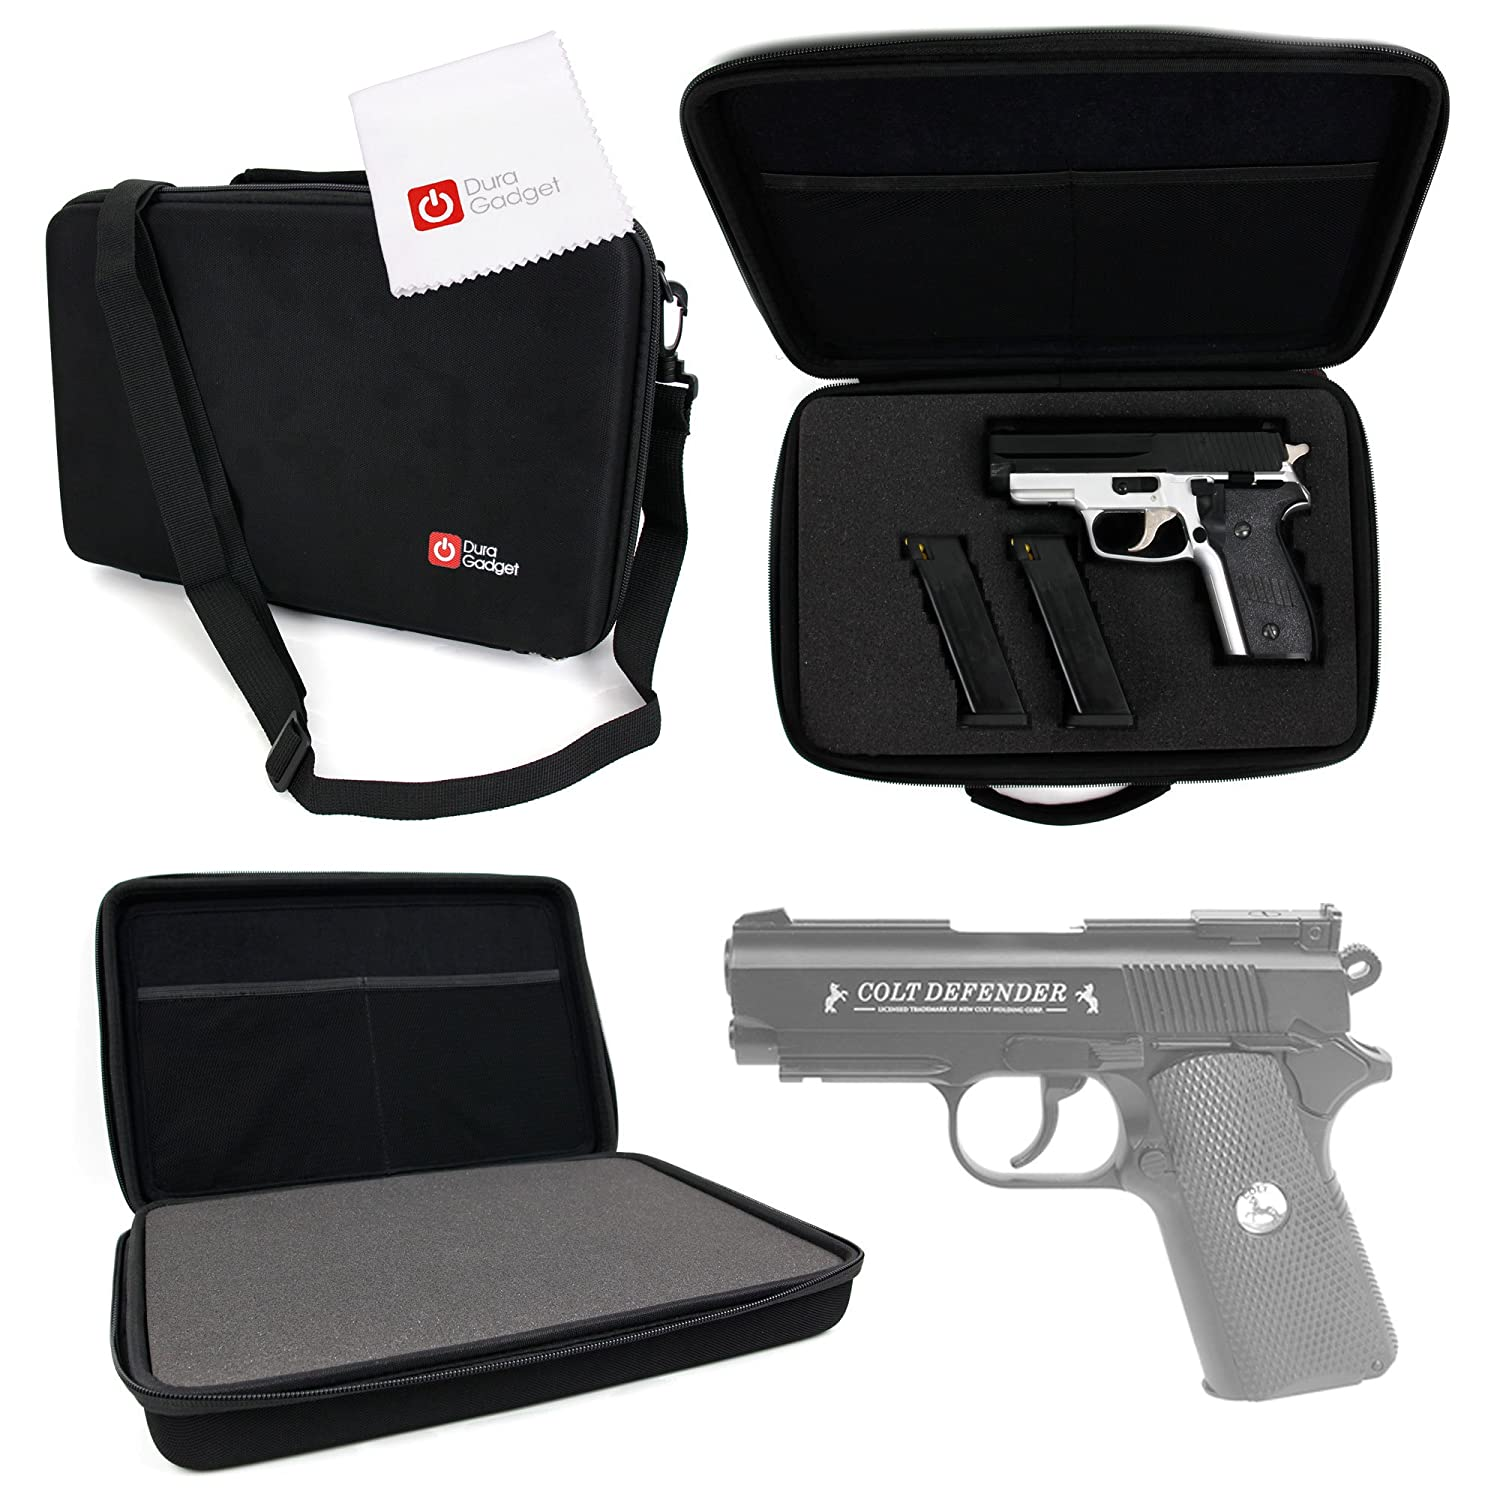 DURAGADGET Colt Defender Pistol BB Airgun Storage Case - Tough Black Armoured EVA 'Shell' Gun Case with Fully-Customizable & Shock-Absorbing D.I.Y Foam Interior for Colt Defender Pistol BB Airgun & Accessories + BONUS Cleaning Cloth!